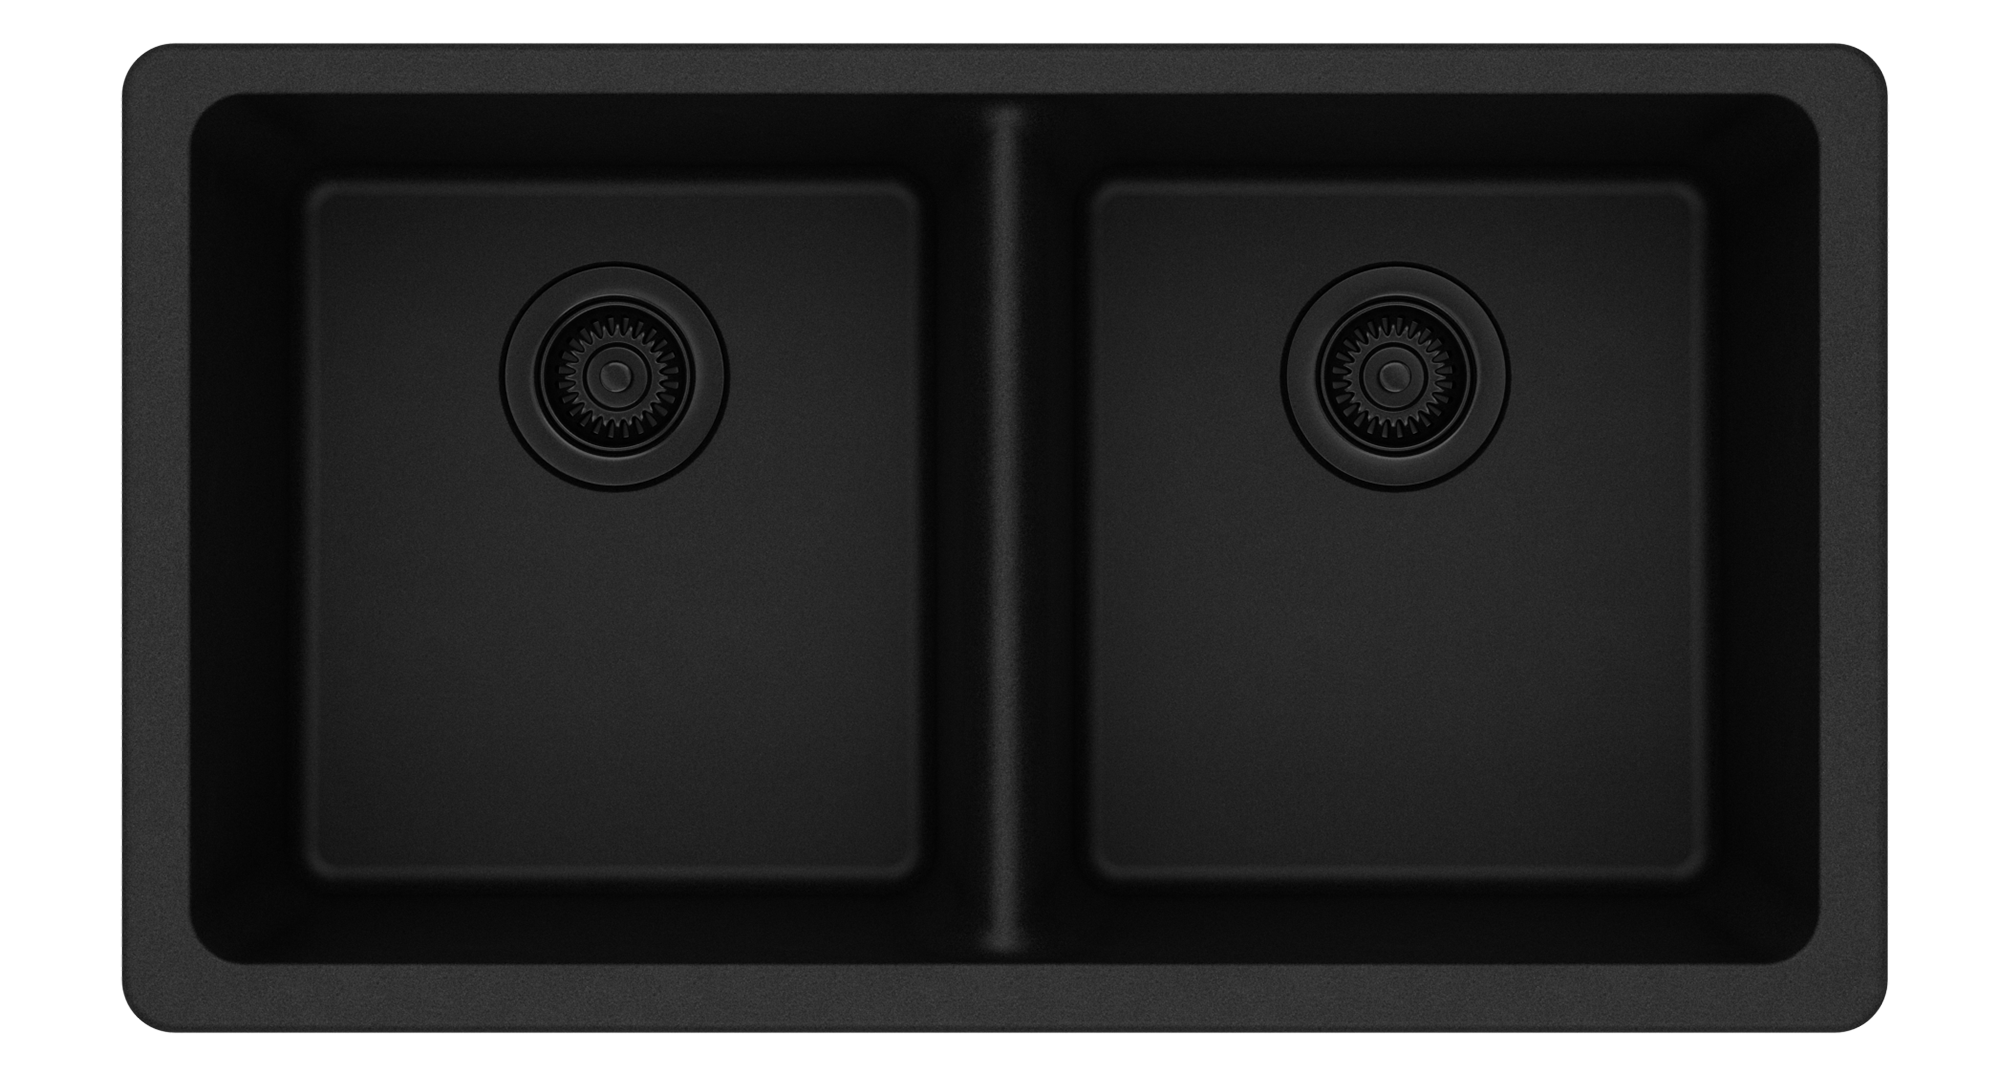 Elkay Quartz Classic 33in x 18-1/2in x 9-1/2in Equal Double Bowl Undermount Sink Black